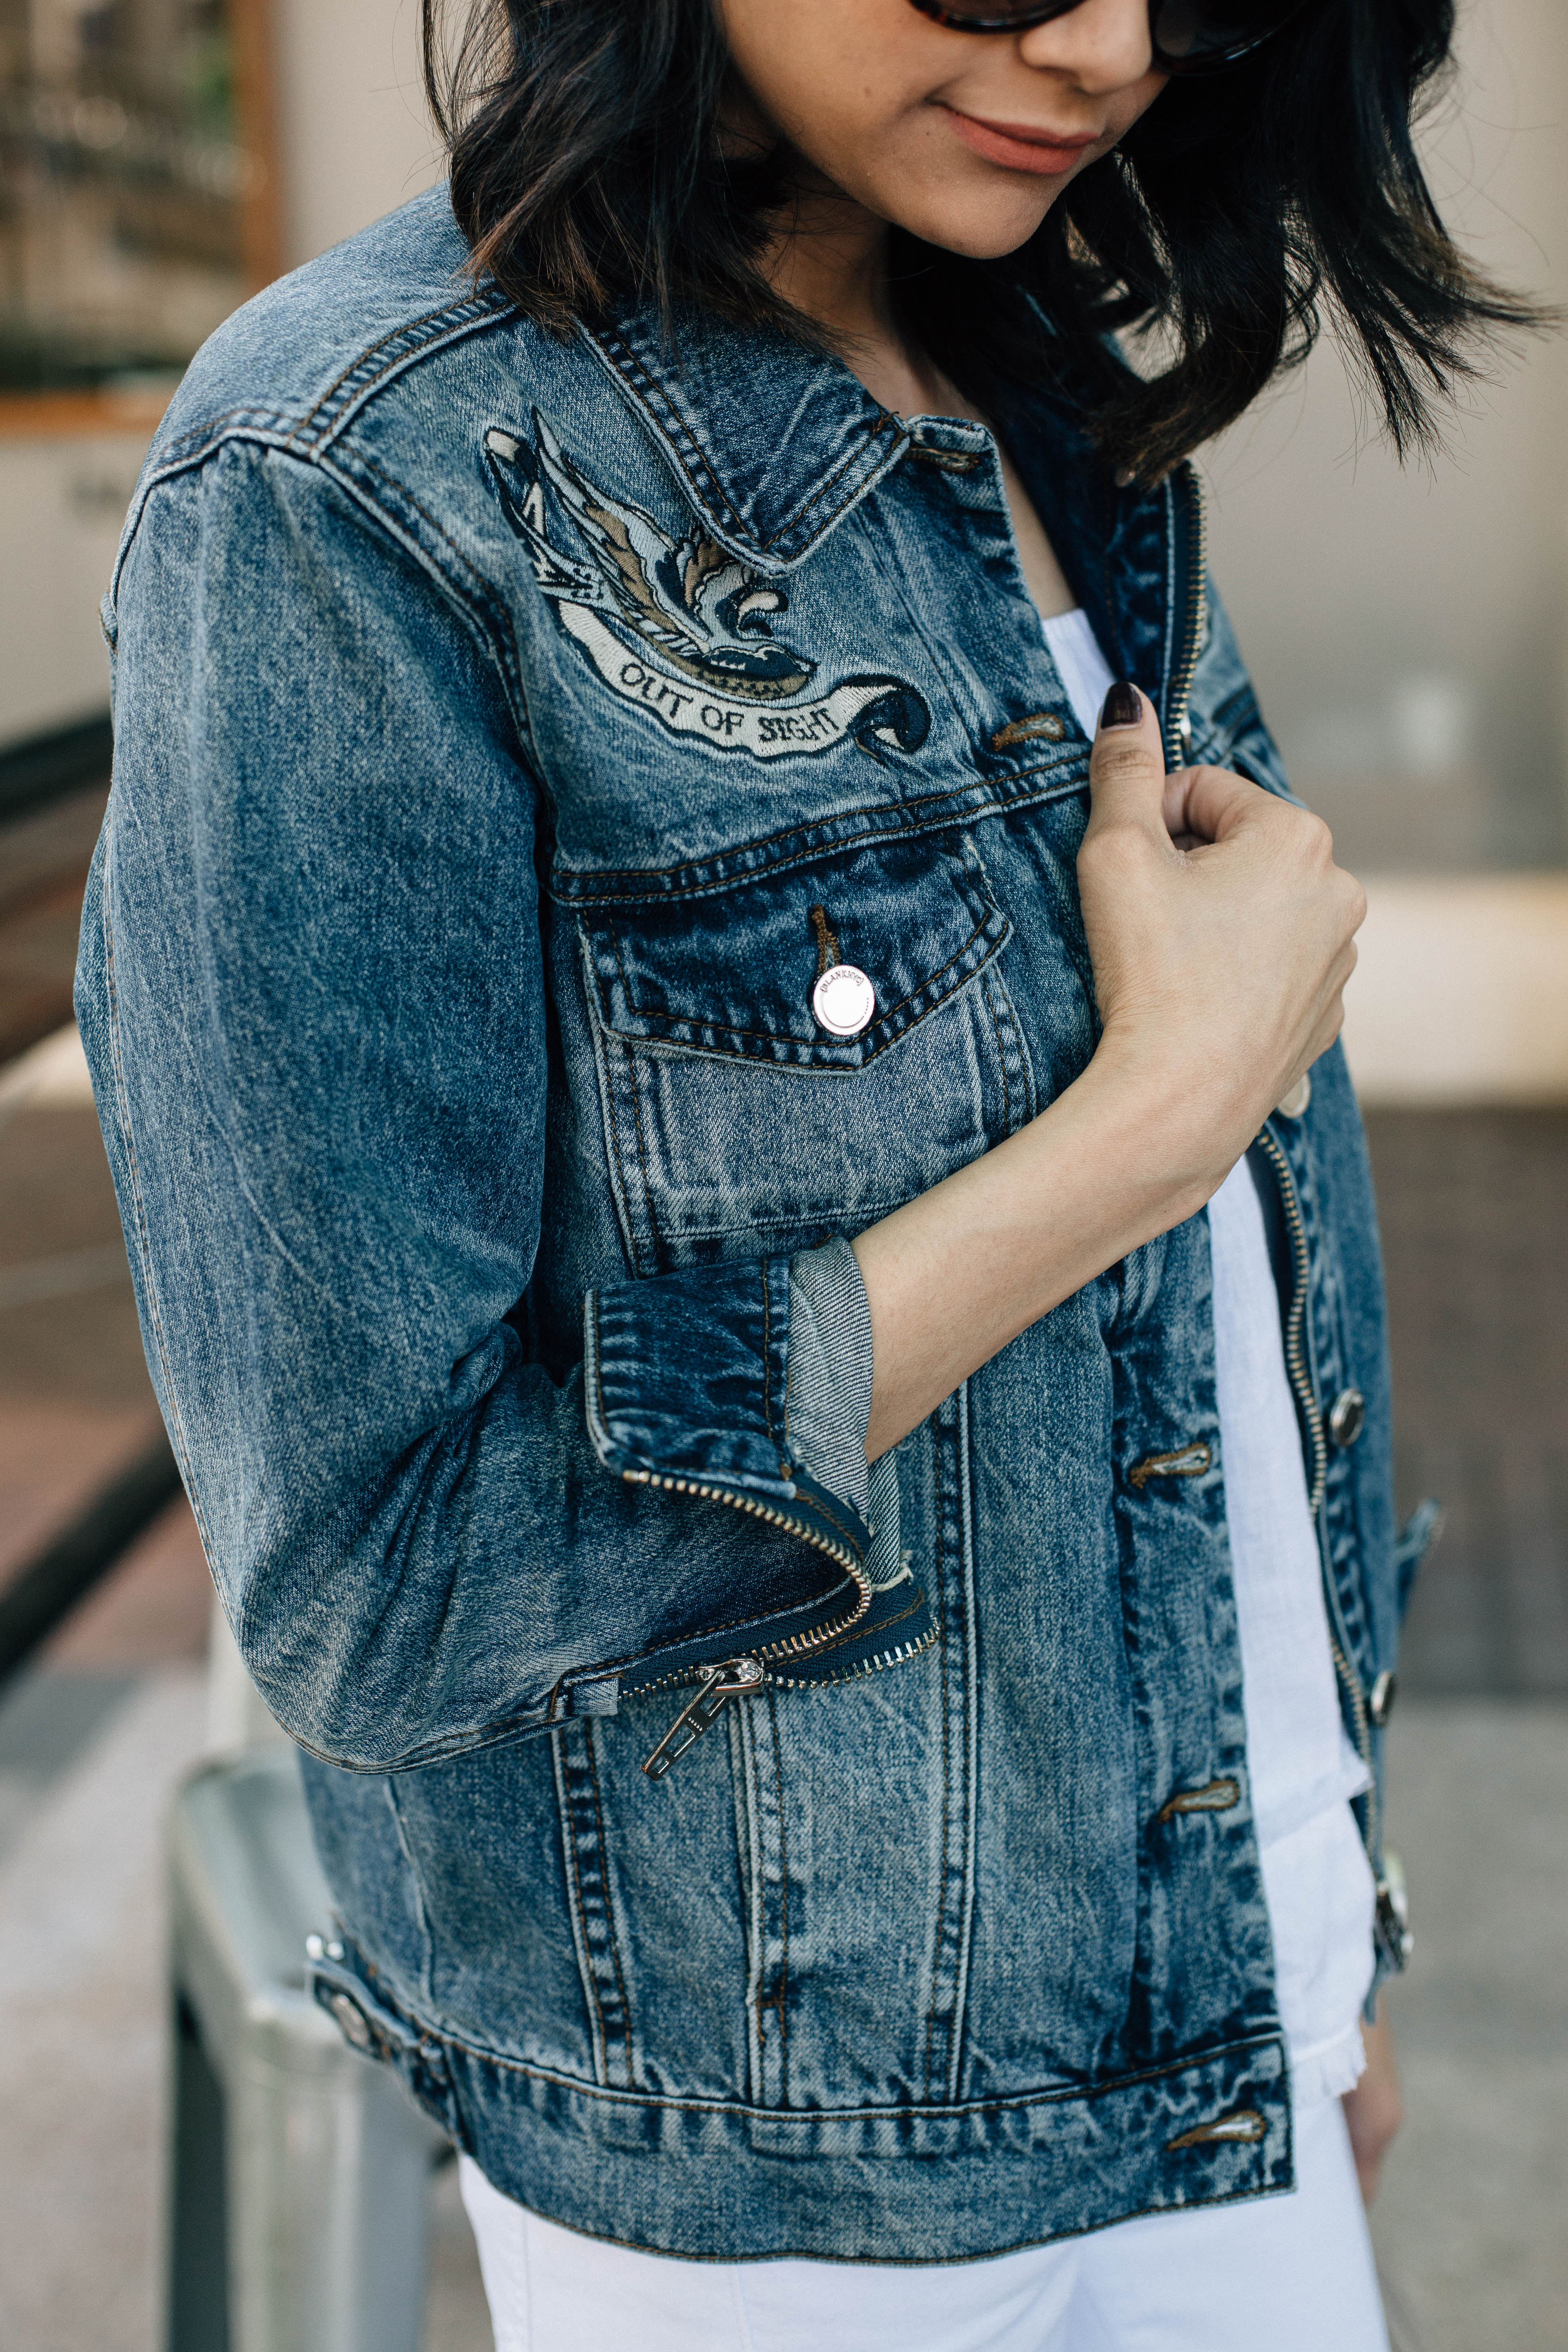 Lifestyle blogger Lilly Beltran from Daily Craving wearing an ILY Couture embroidered denim jacket